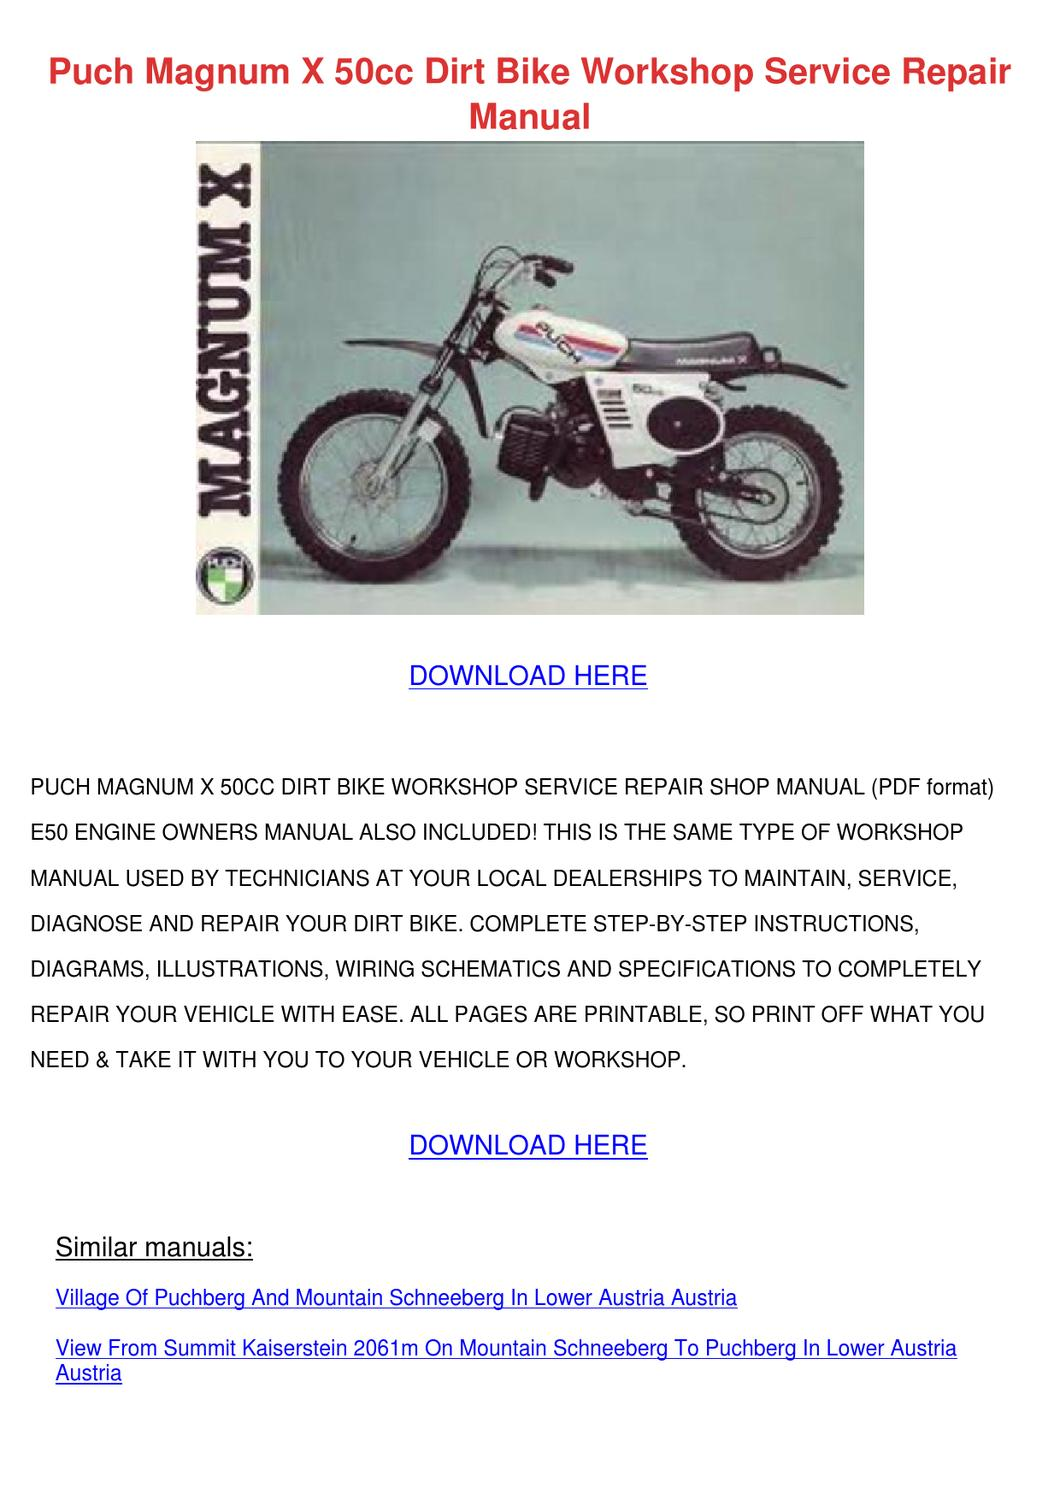 Puch Magnum X 50cc Dirt Bike Workshop Service By